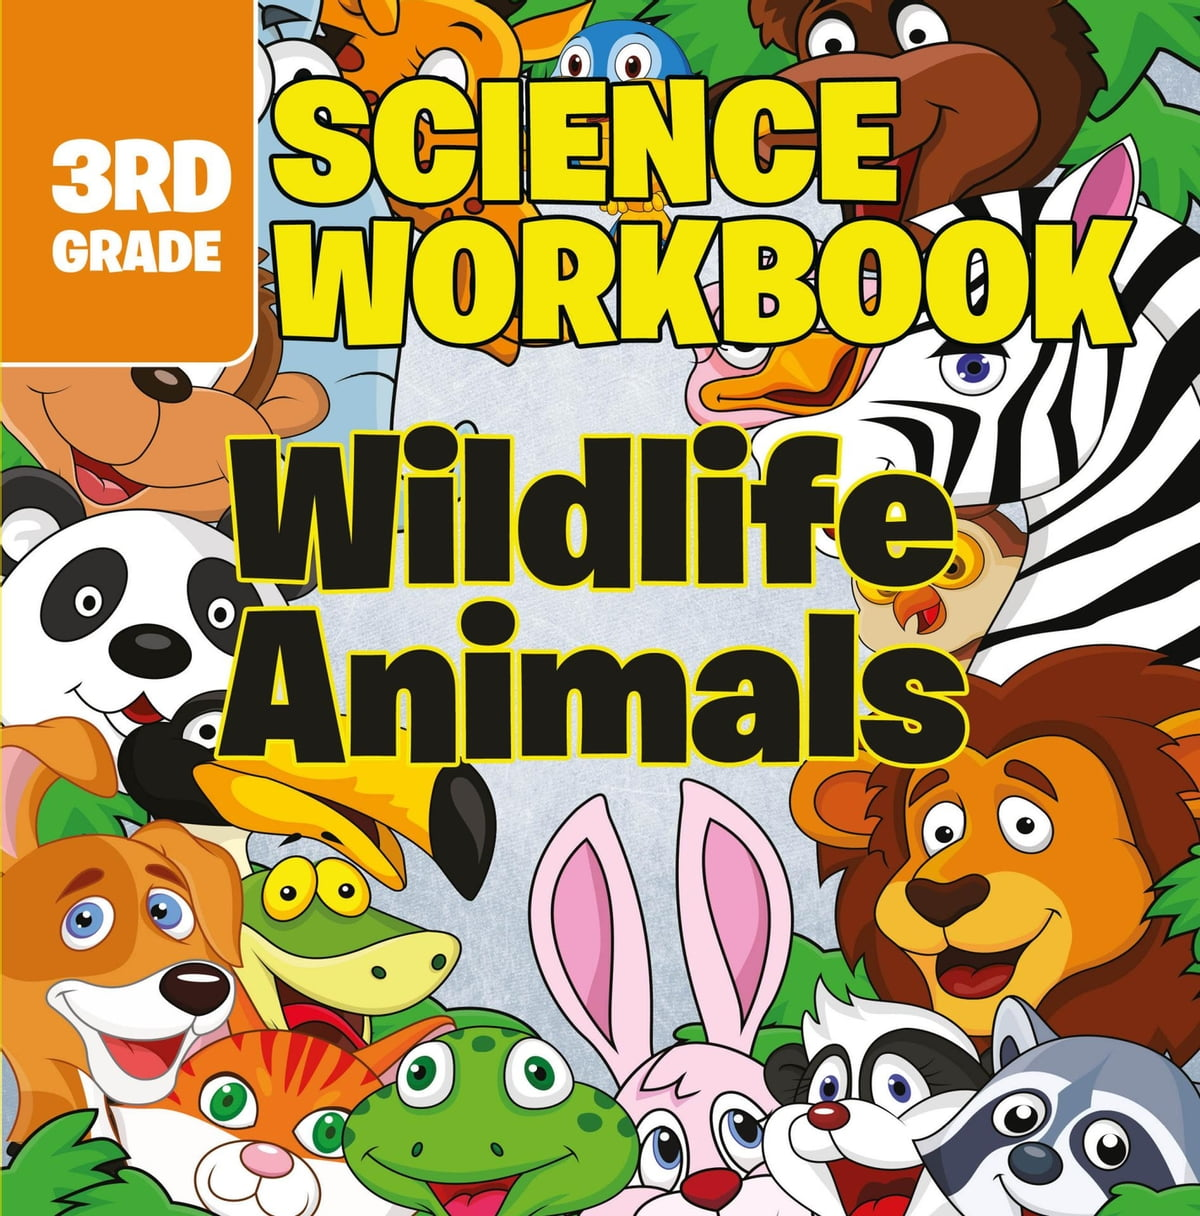 Workbooks big third grade workbook : 3rd Grade Science Workbooks: Wildlife Animals eBook by Baby ...